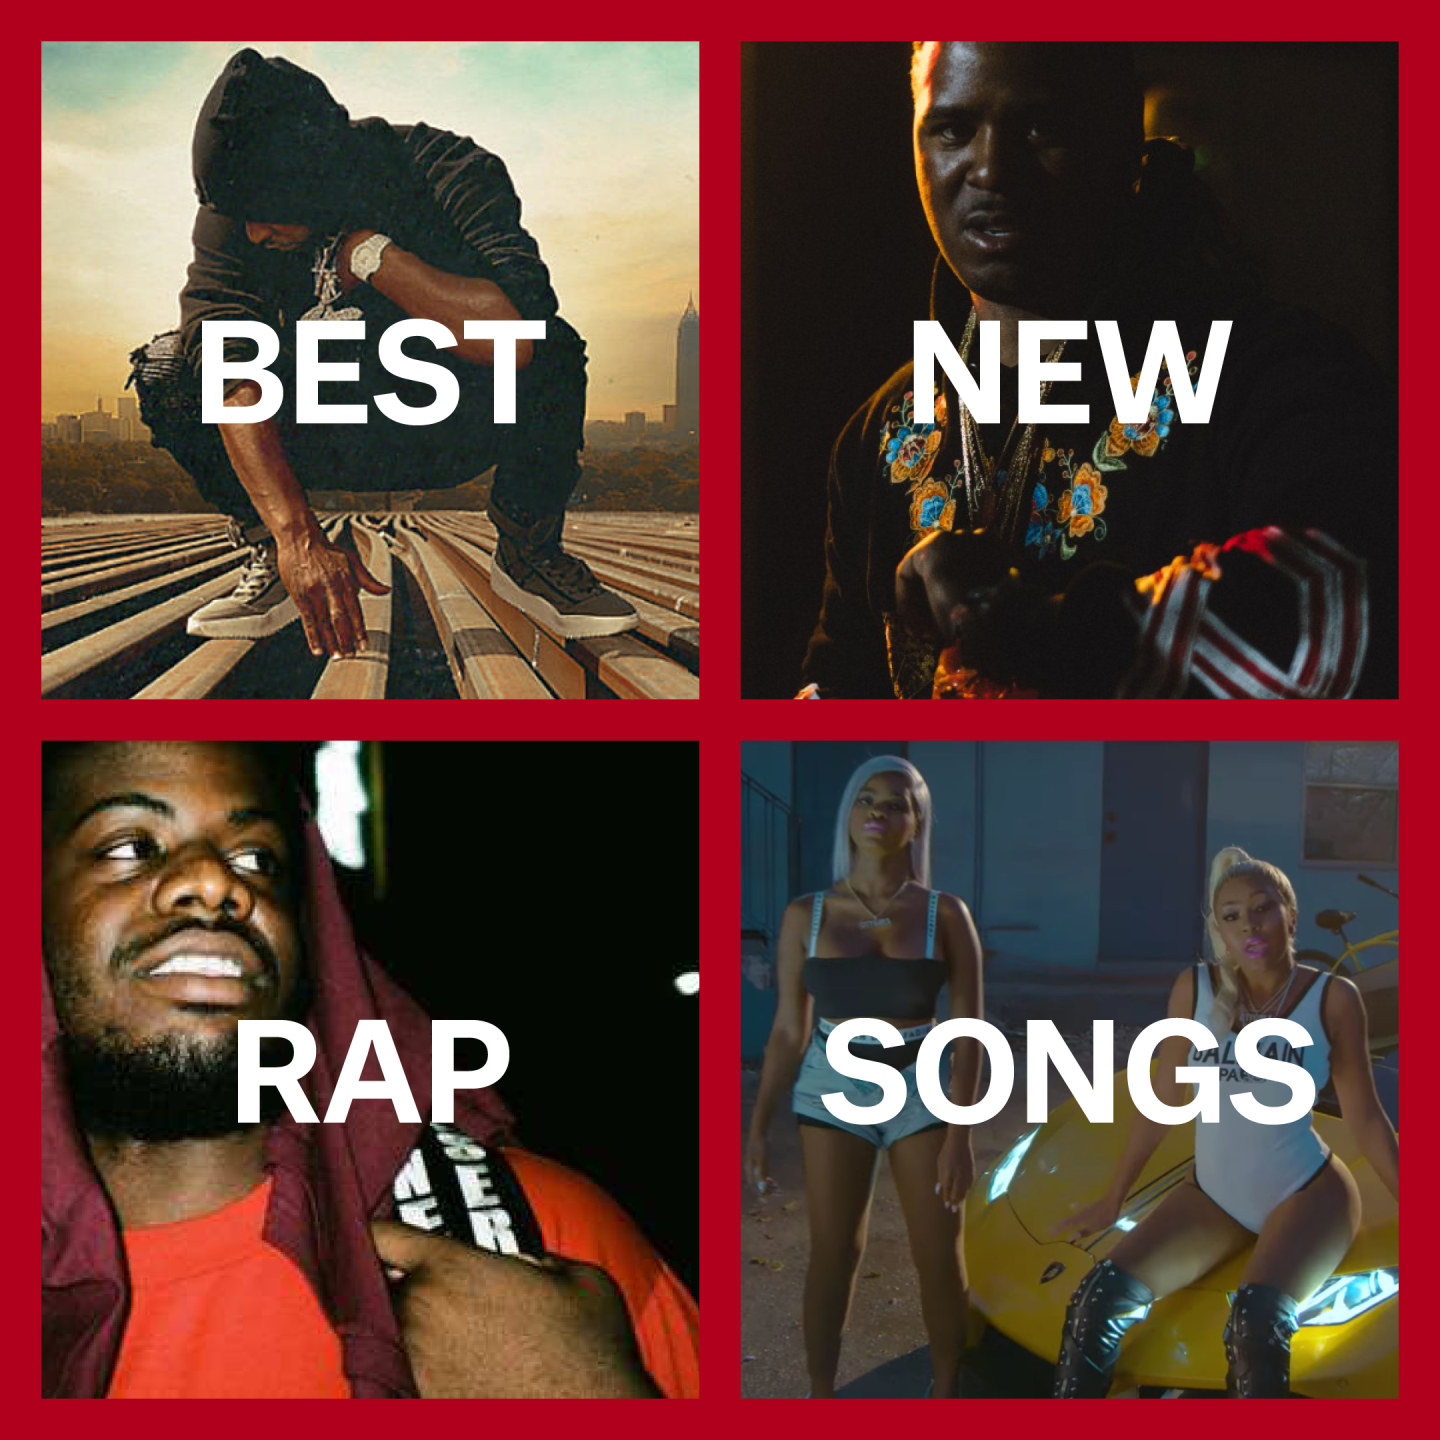 Warriors Come Out To Play Rap Song: The 10 Best New Rap Songs Right Now